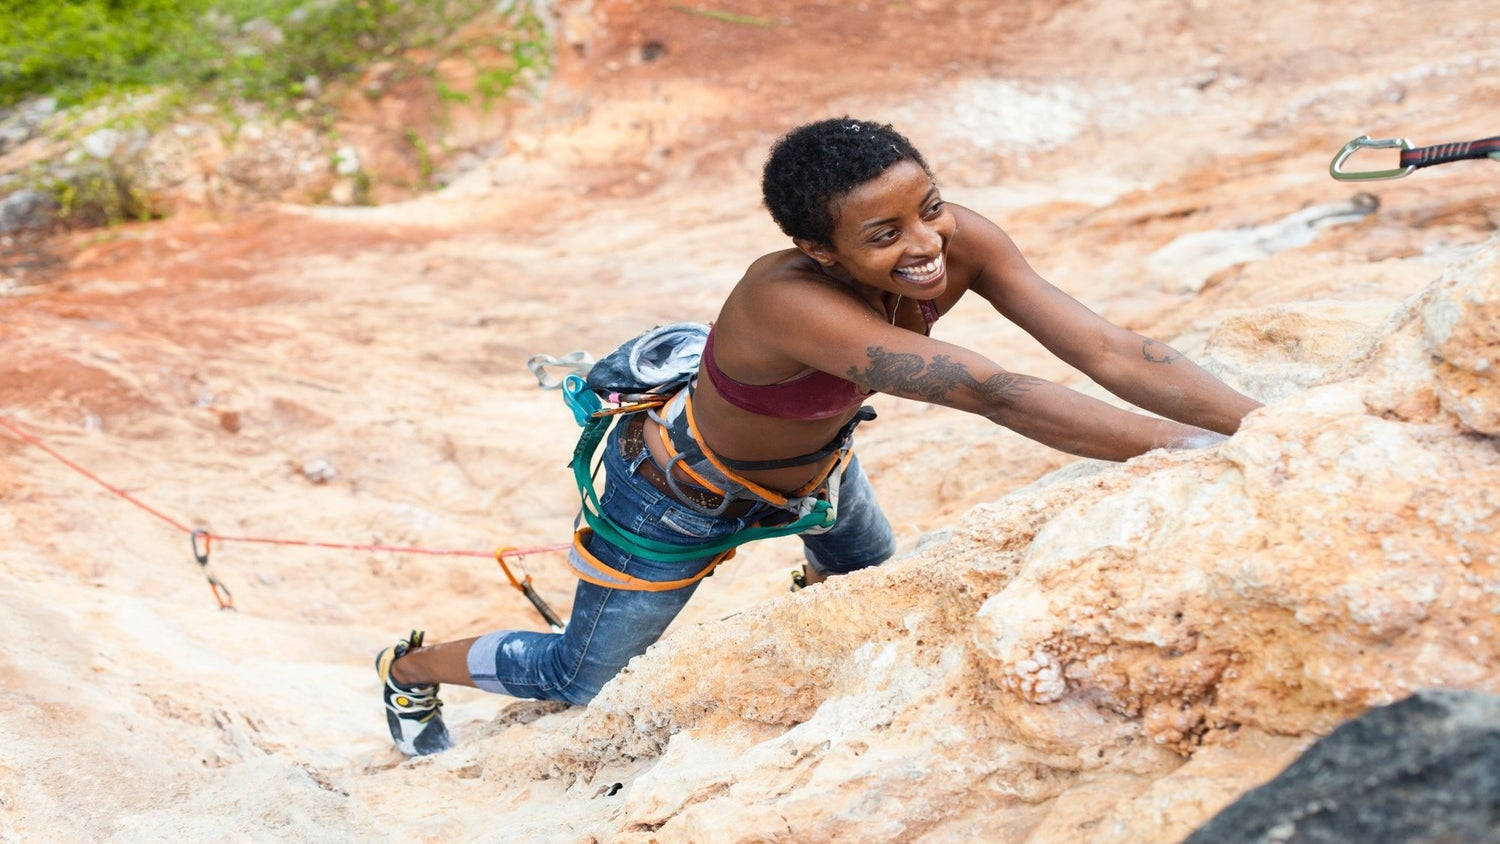 Meet The First Black Woman In The US To Own An Indoor Rock Climbing Gym